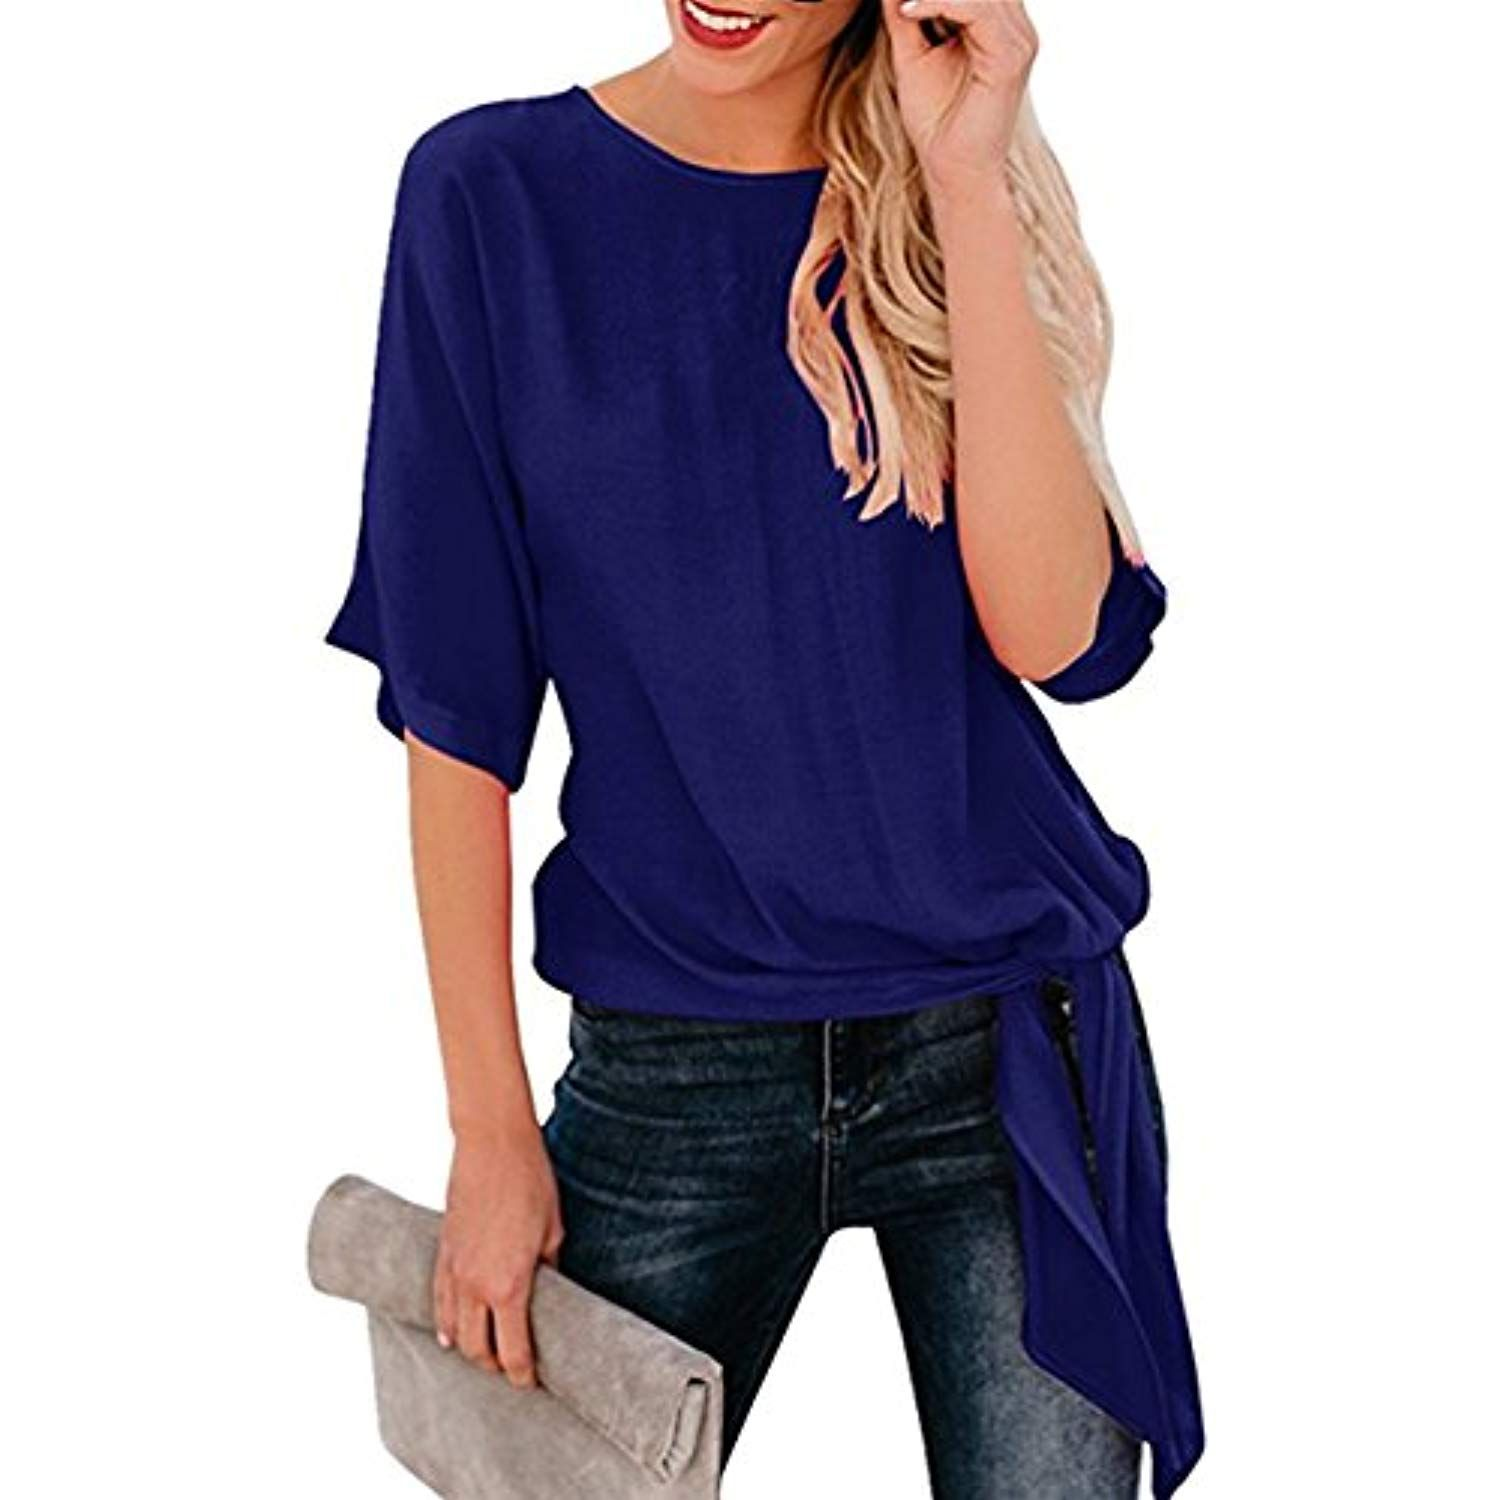 0c6fd5b8c Womens Loose Blouse Half Sleeve Round Neck T Shirts Tie Front Knot Casual  Tops ** Click image for more details. (This is an affiliate link)